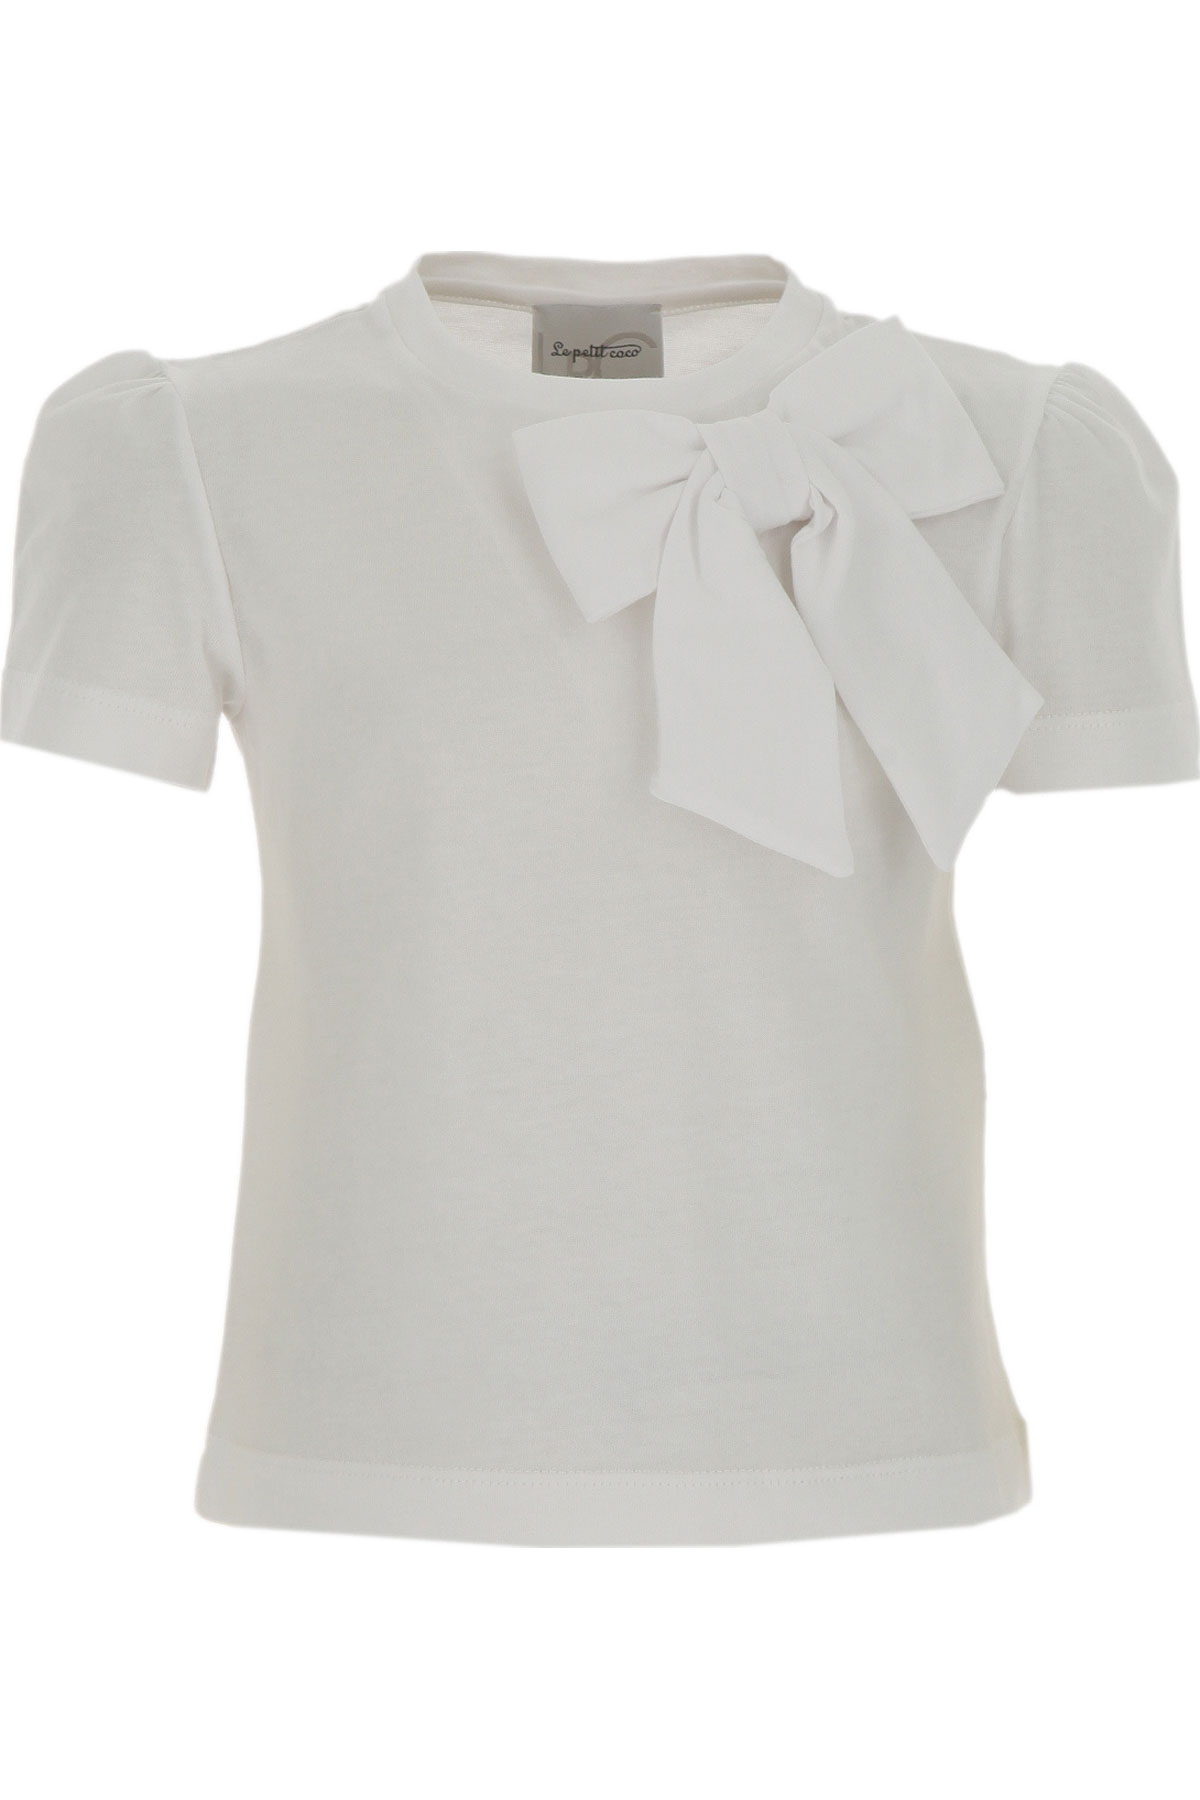 Le Petit Coco Kids T-Shirt for Girls On Sale, White, Organic Cotton, 2019, 4Y 6Y 8Y